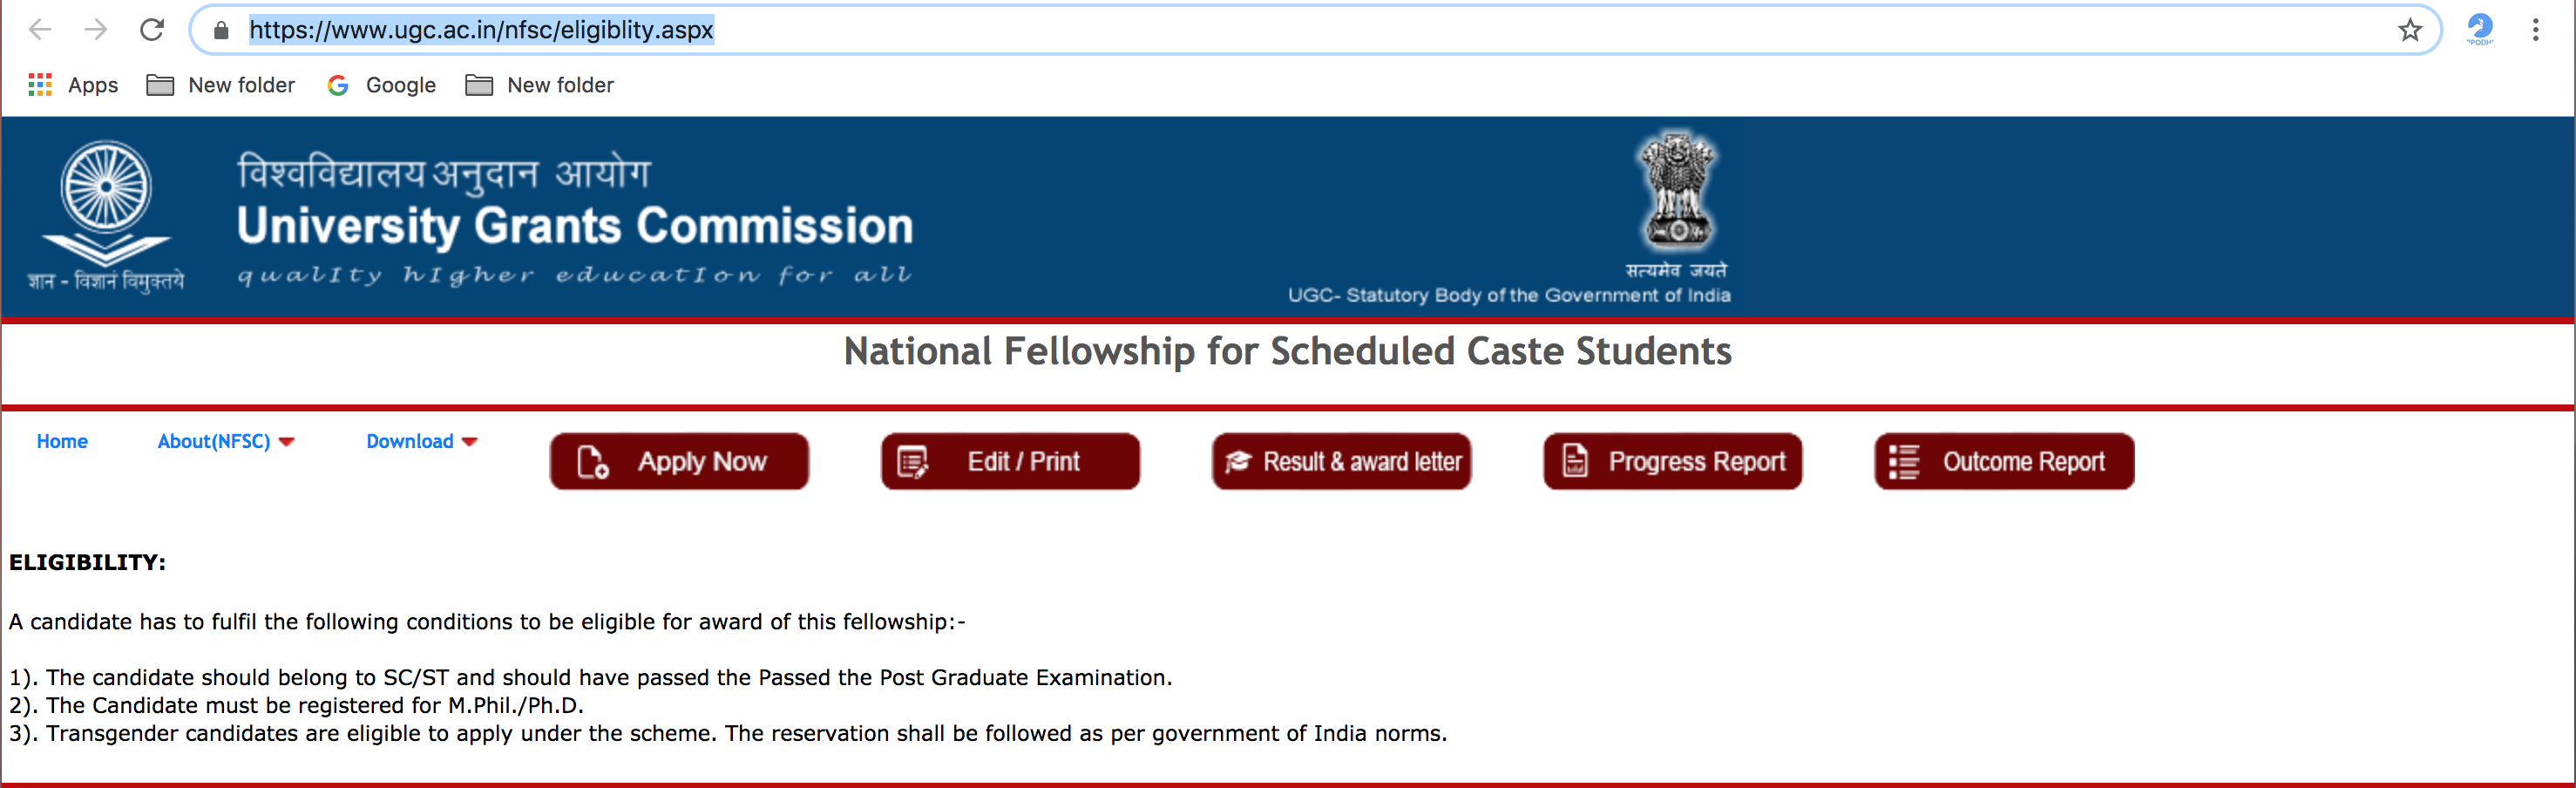 Earlier eligibility criteria for National Fellowship for Scheduled Caste Students. Credit: Screenshot from UGC website